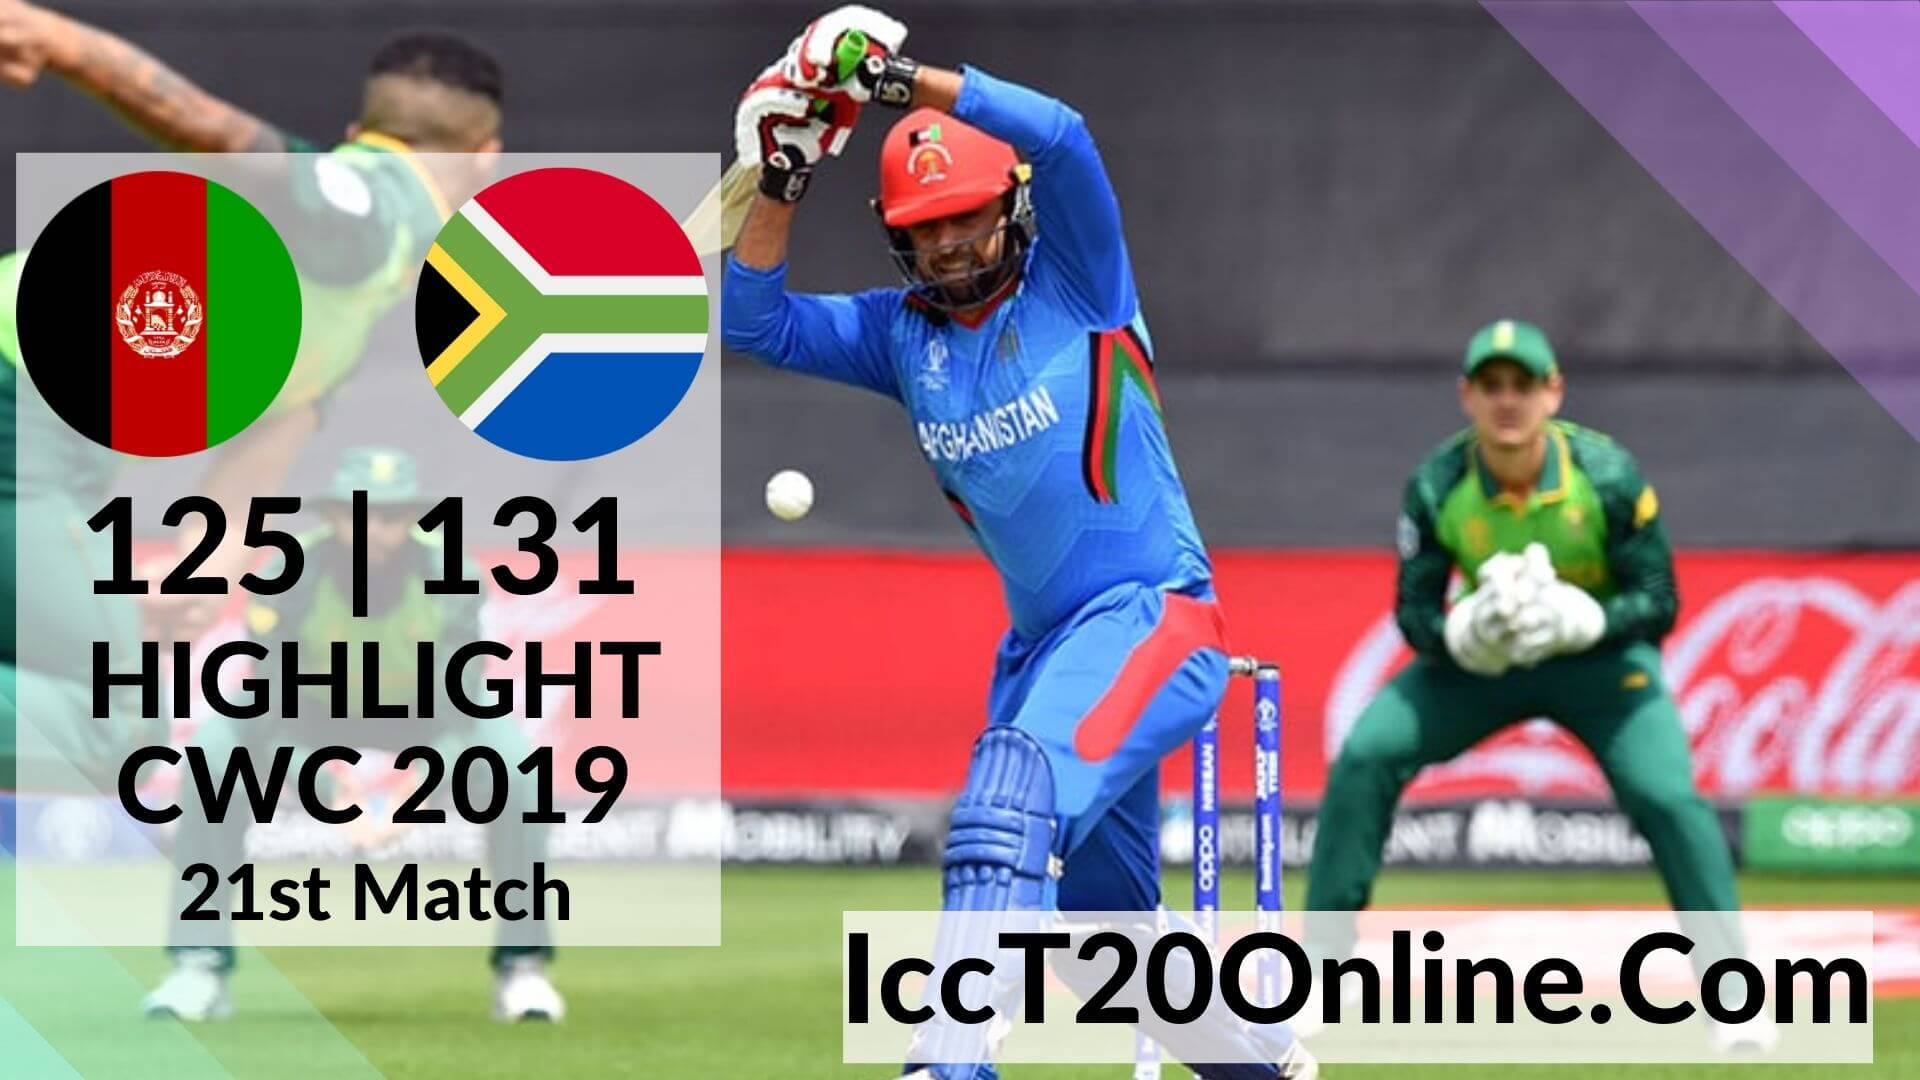 Afghanistan Vs South Africa Highlights 2019 CWC 21st Match